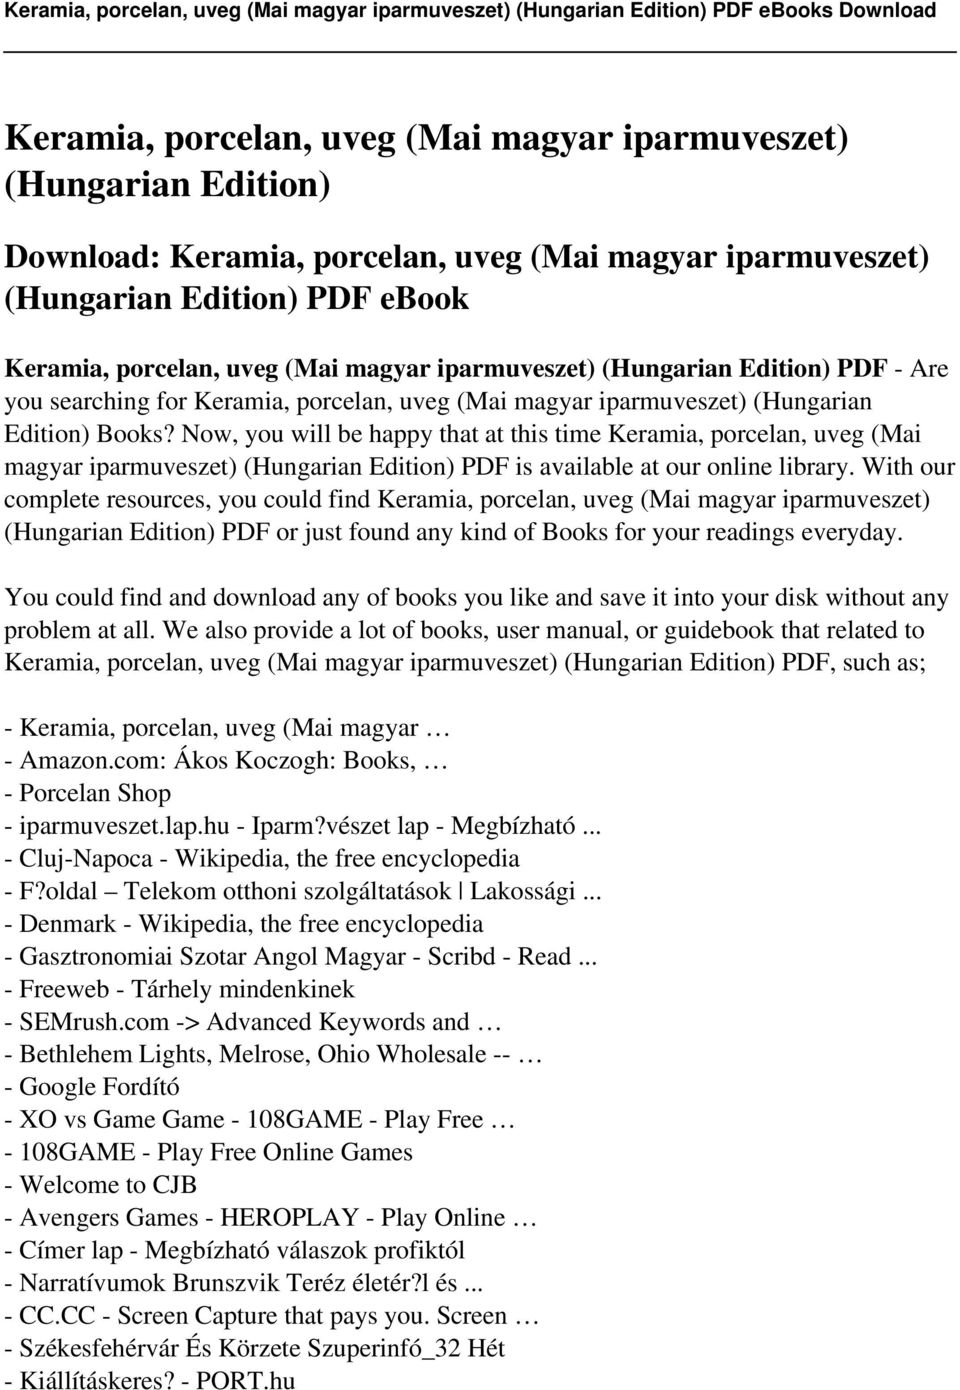 Now, you will be happy that at this time Keramia, porcelan, uveg (Mai magyar iparmuveszet) (Hungarian Edition) PDF is available at our online library.